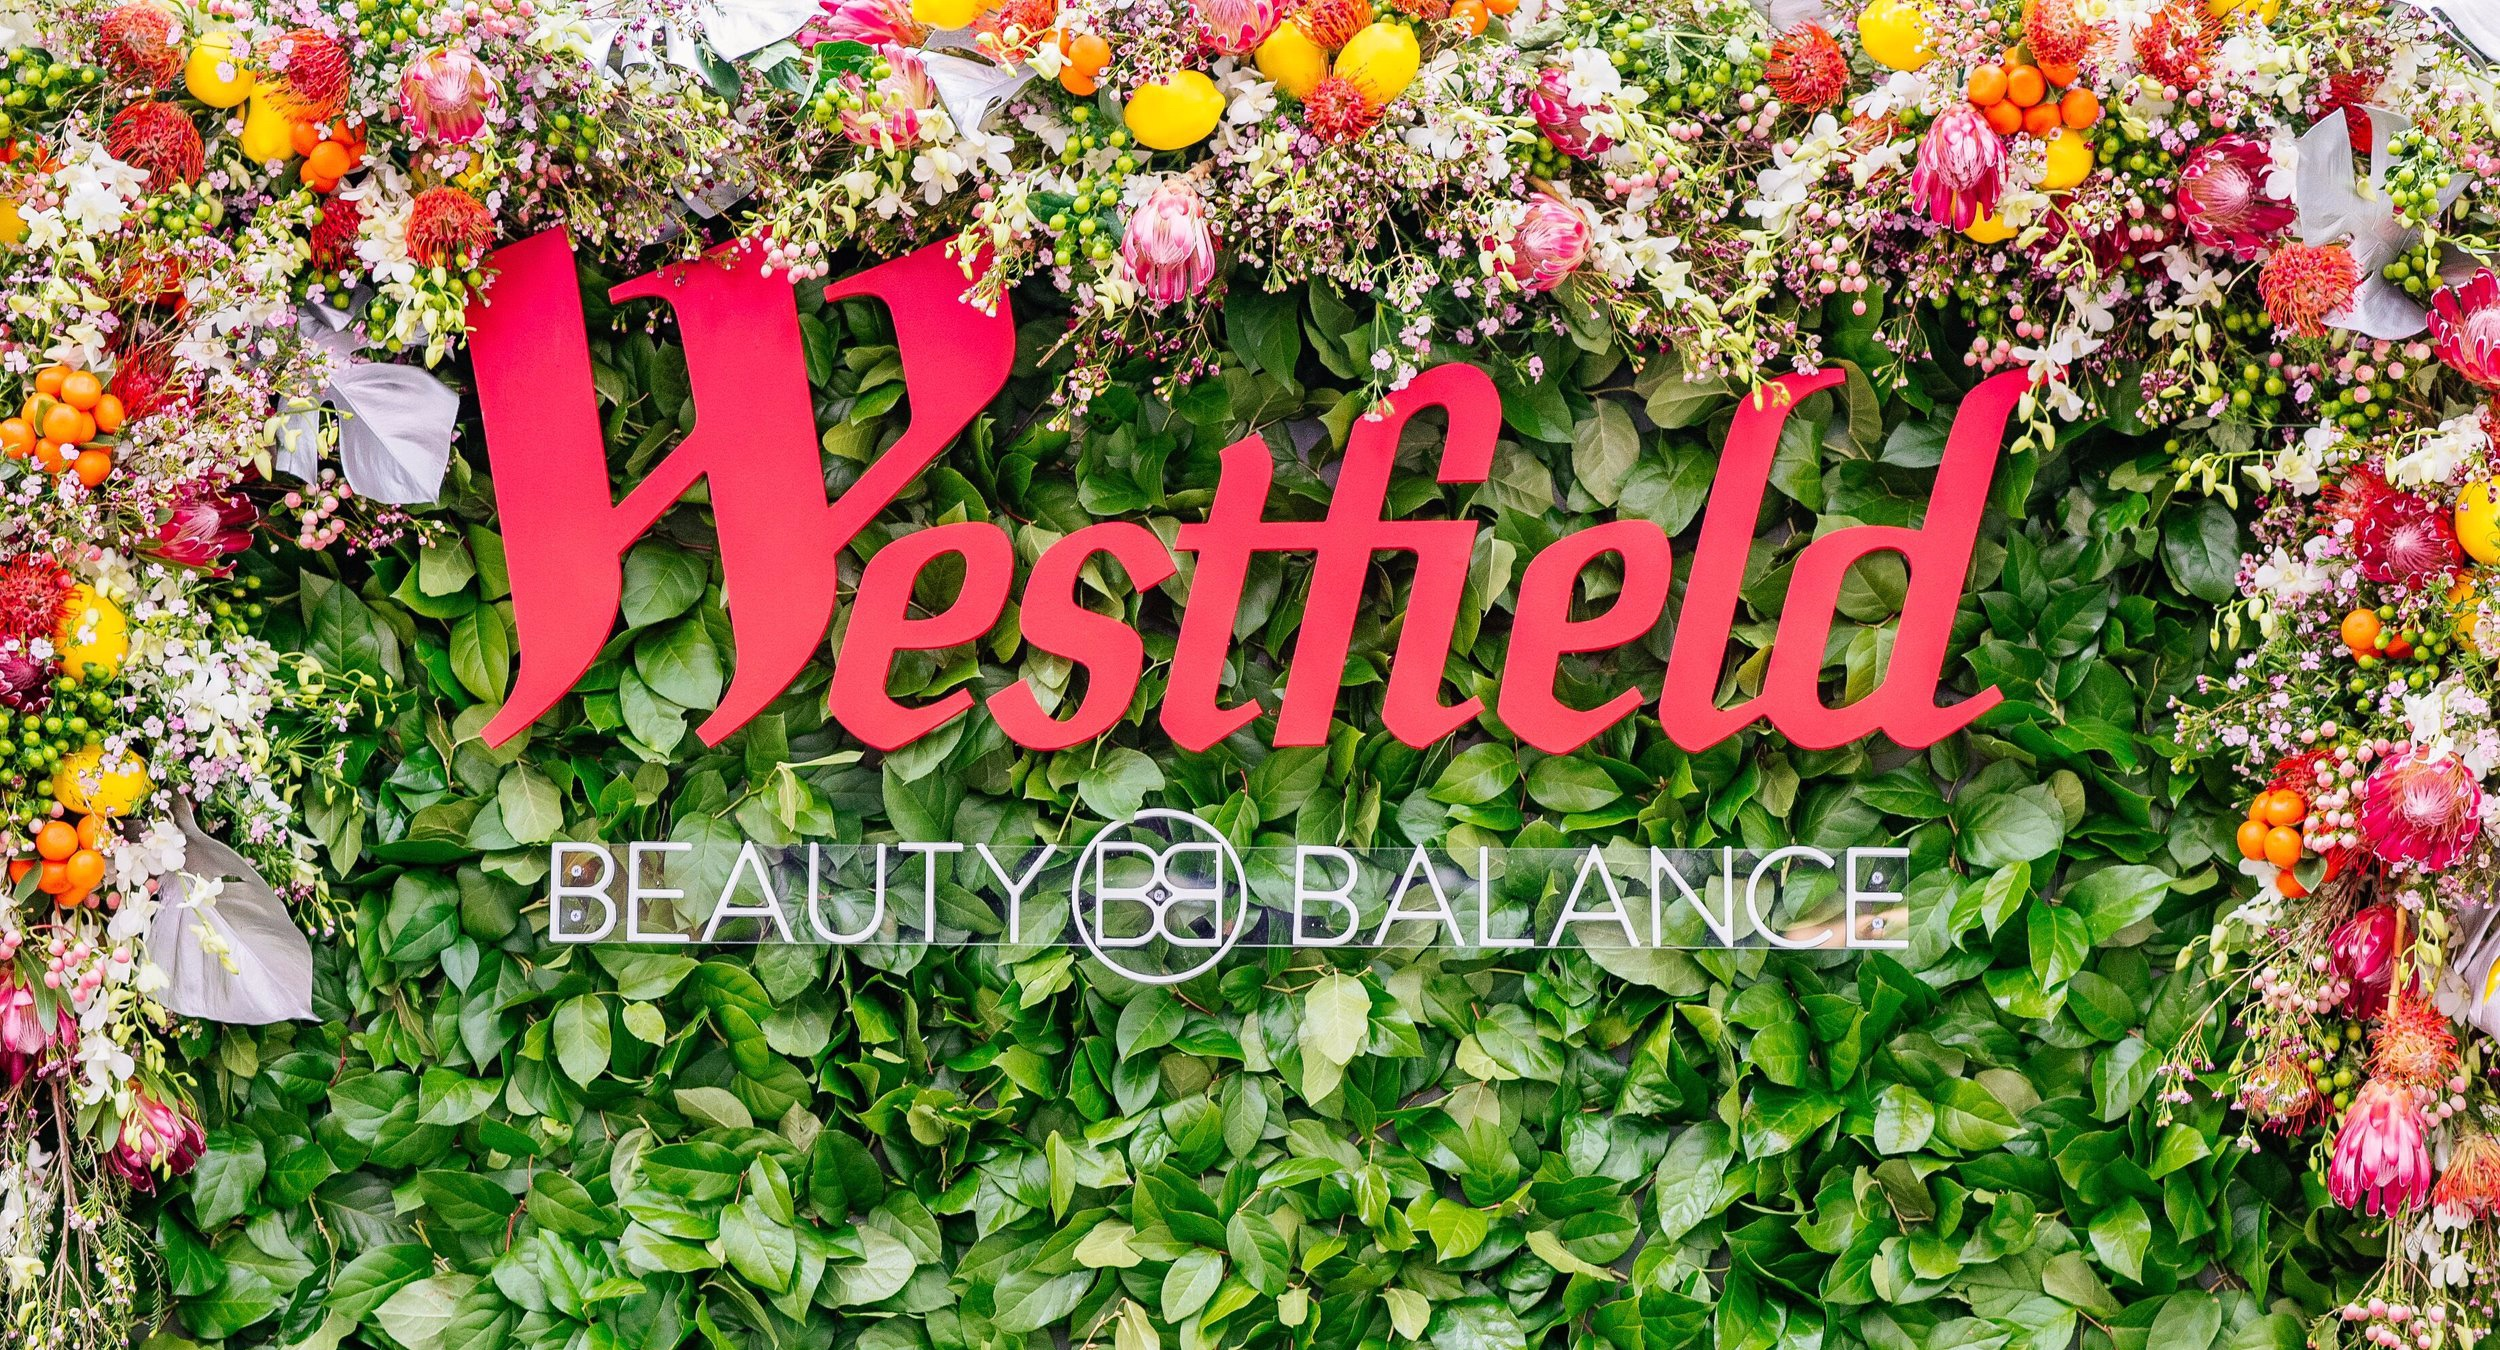 Westfield Beauty & Balance National Program